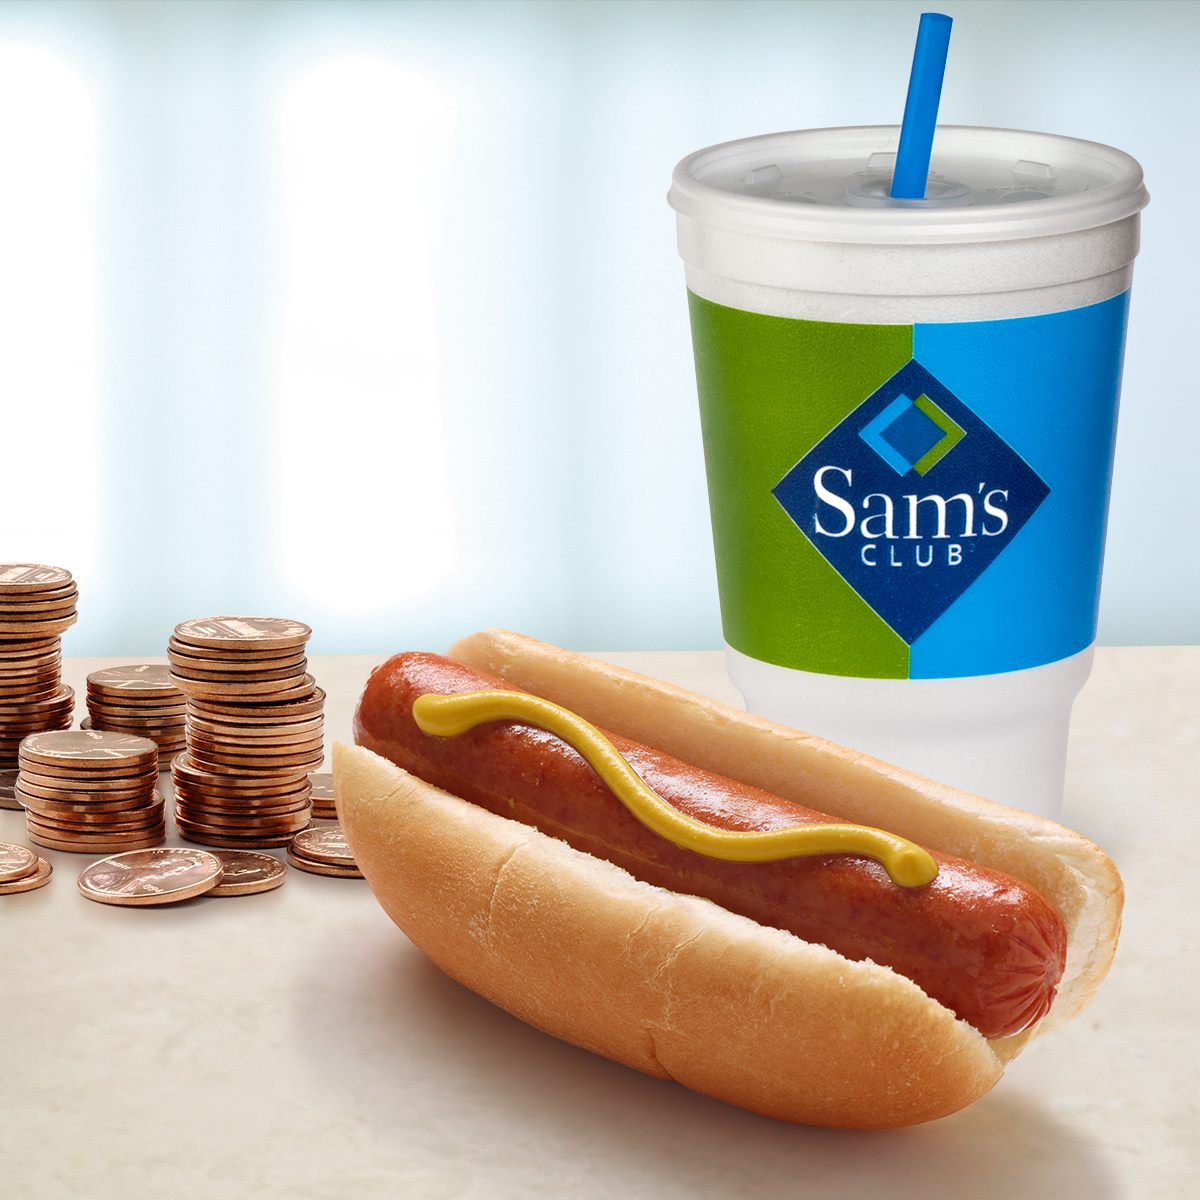 graphic regarding Nathans Hot Dog Printable Coupons identified as Nathans Popular Incredibly hot Pet dog Combo Dinner and Consume Just $1!